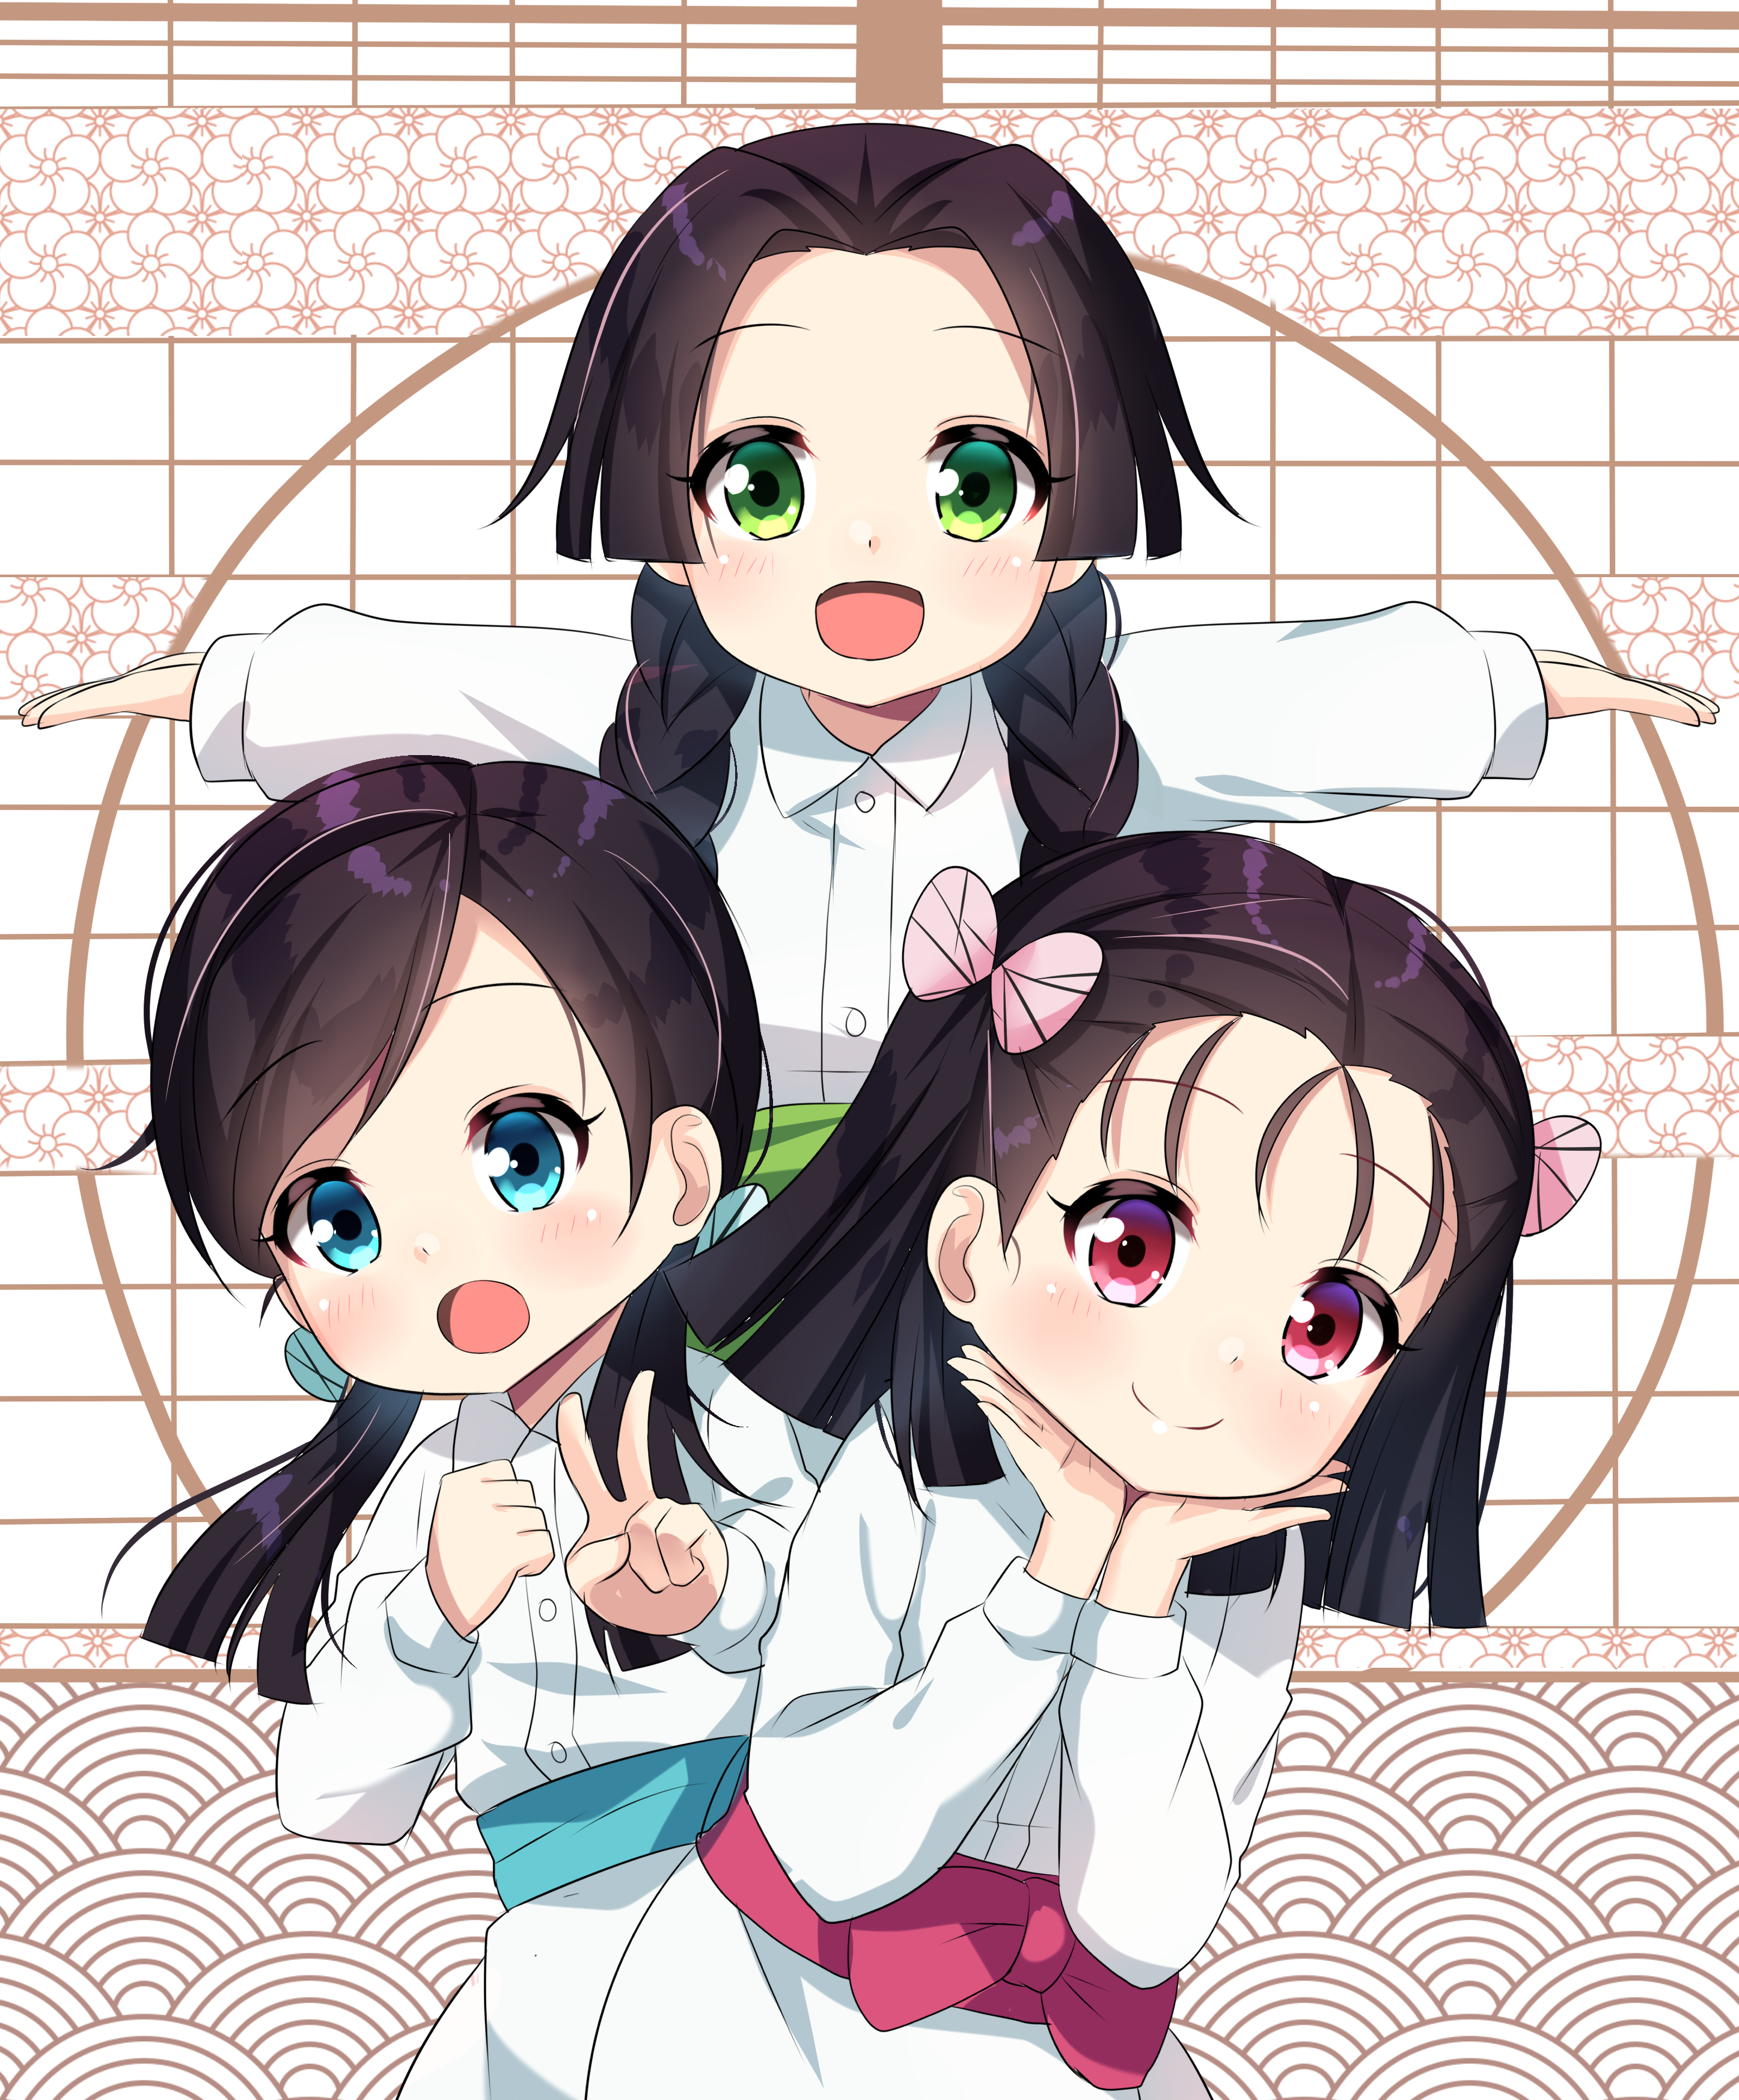 Sumi Nakahara, Kiyo Terauchi and Naho Takada Demon Slayer